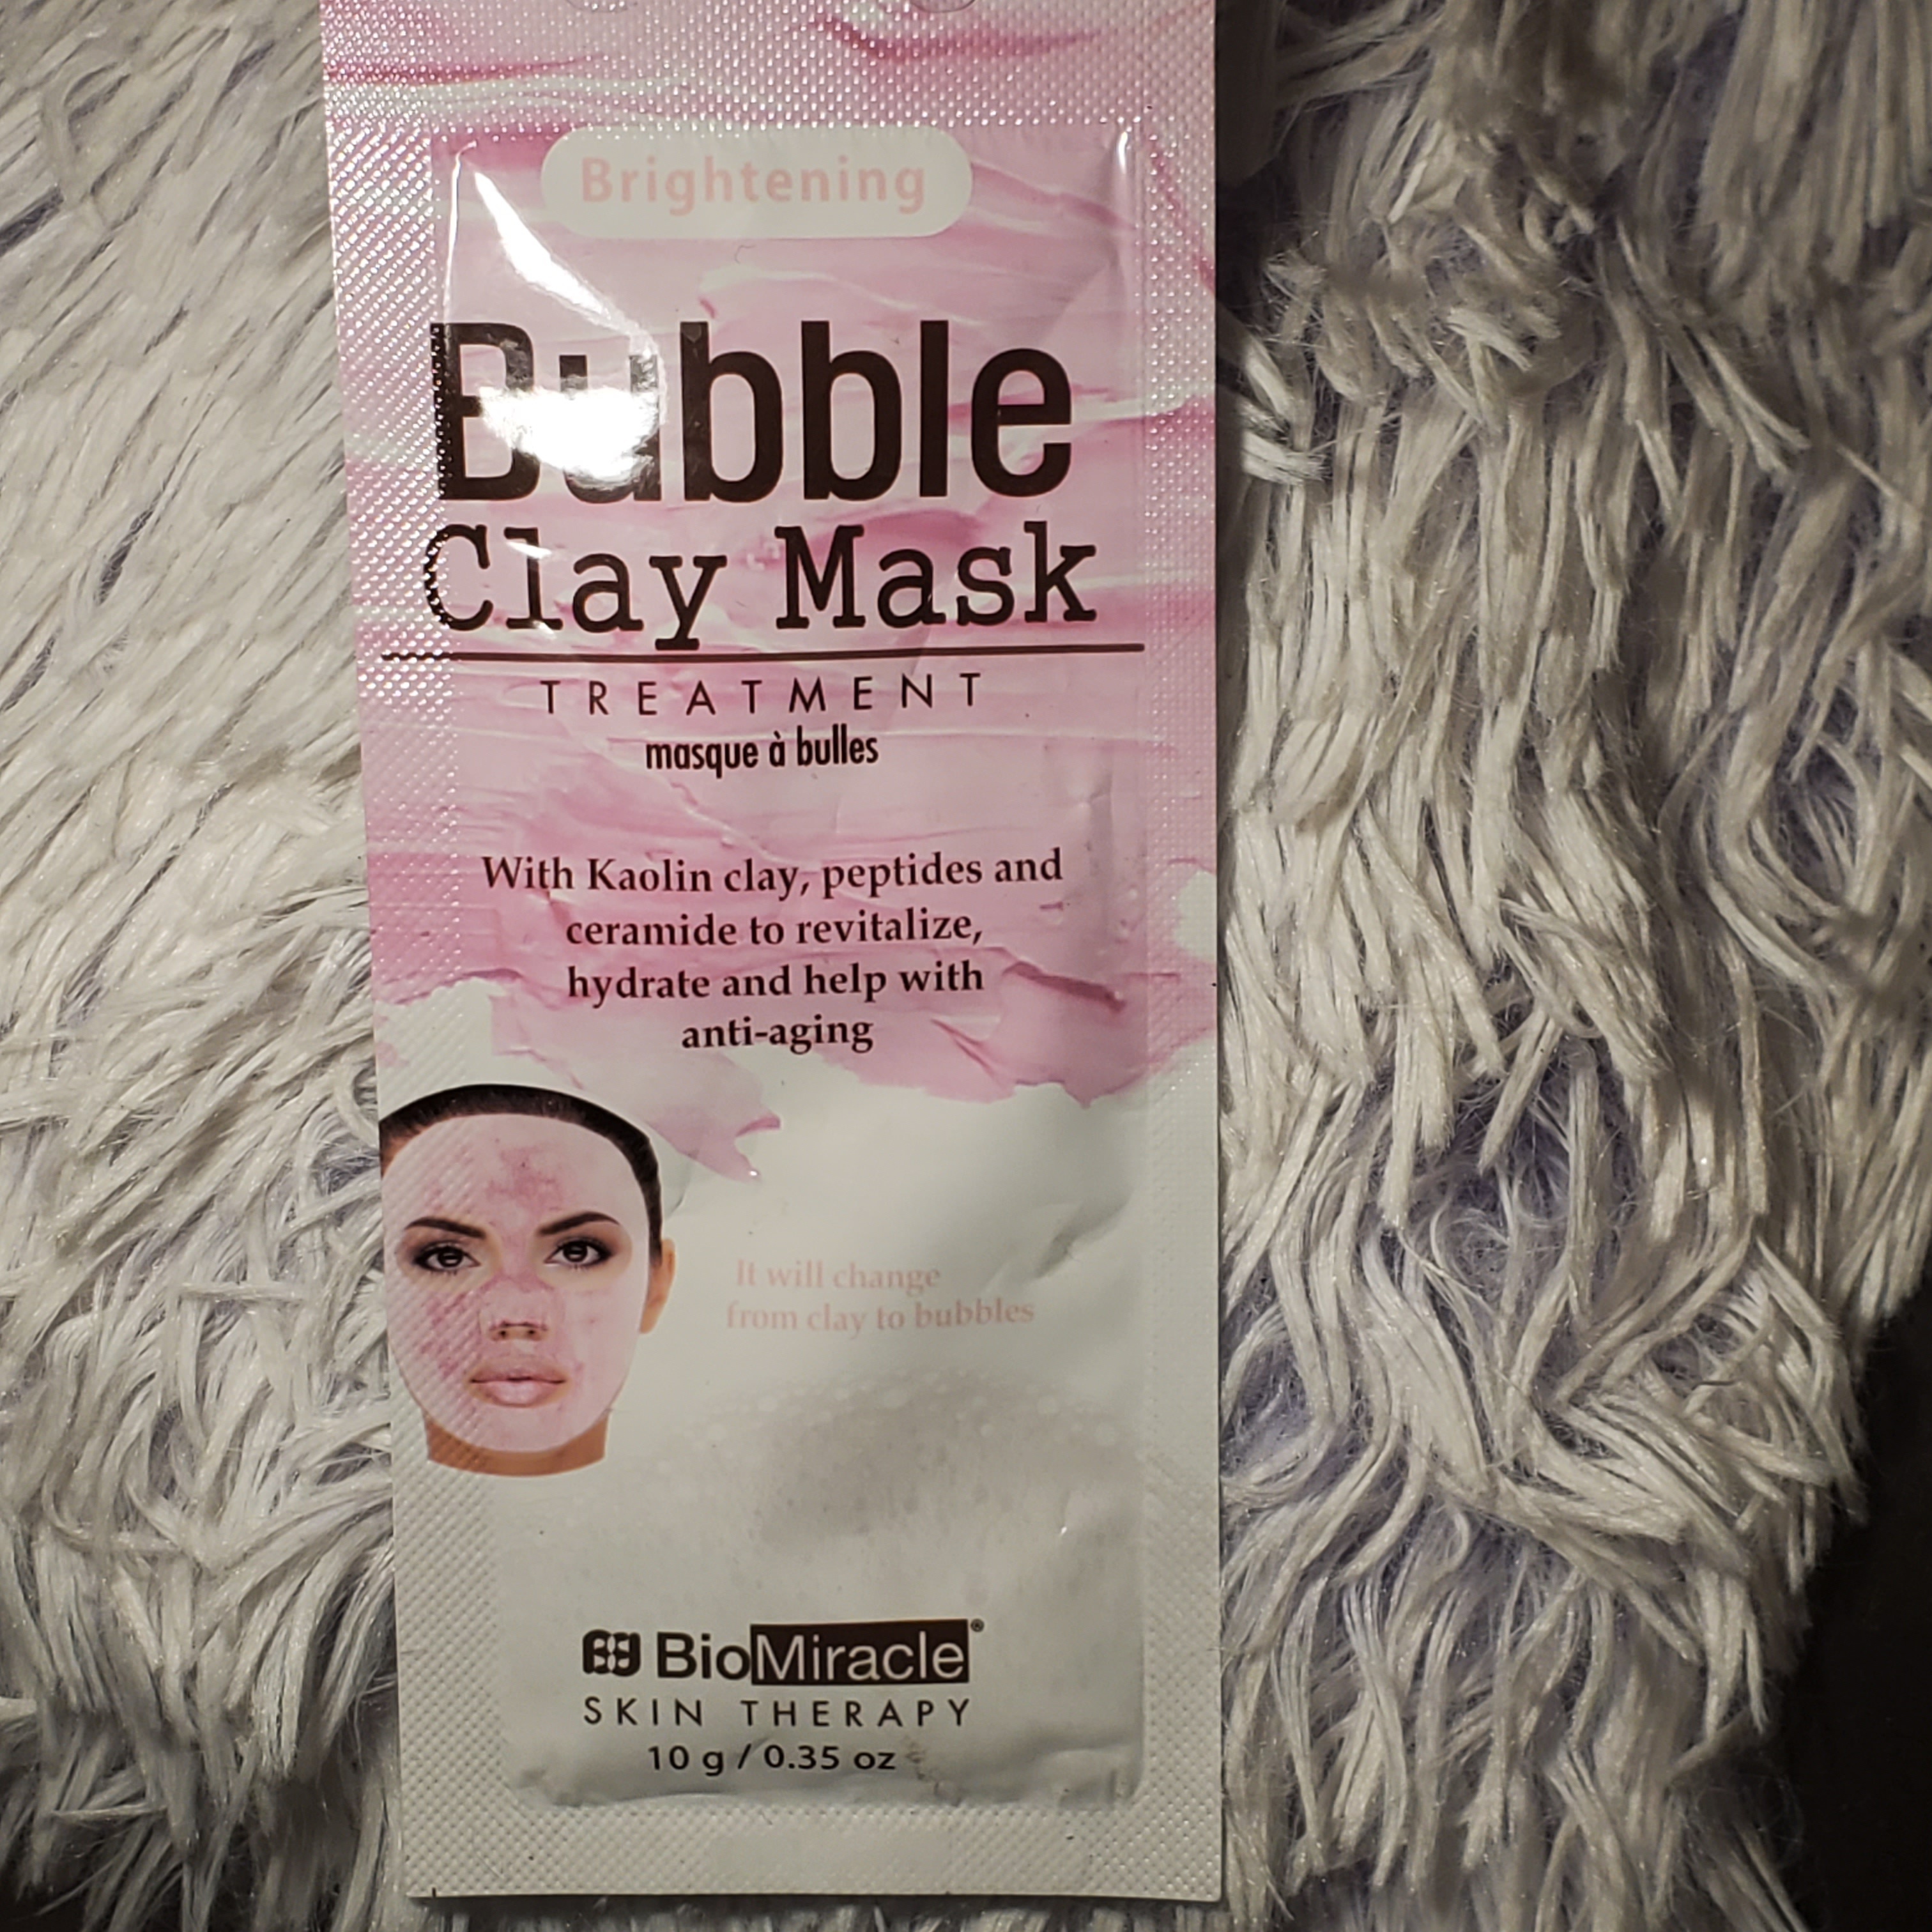 BioMiracle Skin Therapy Brightening Bubble Clay Mask Treatment